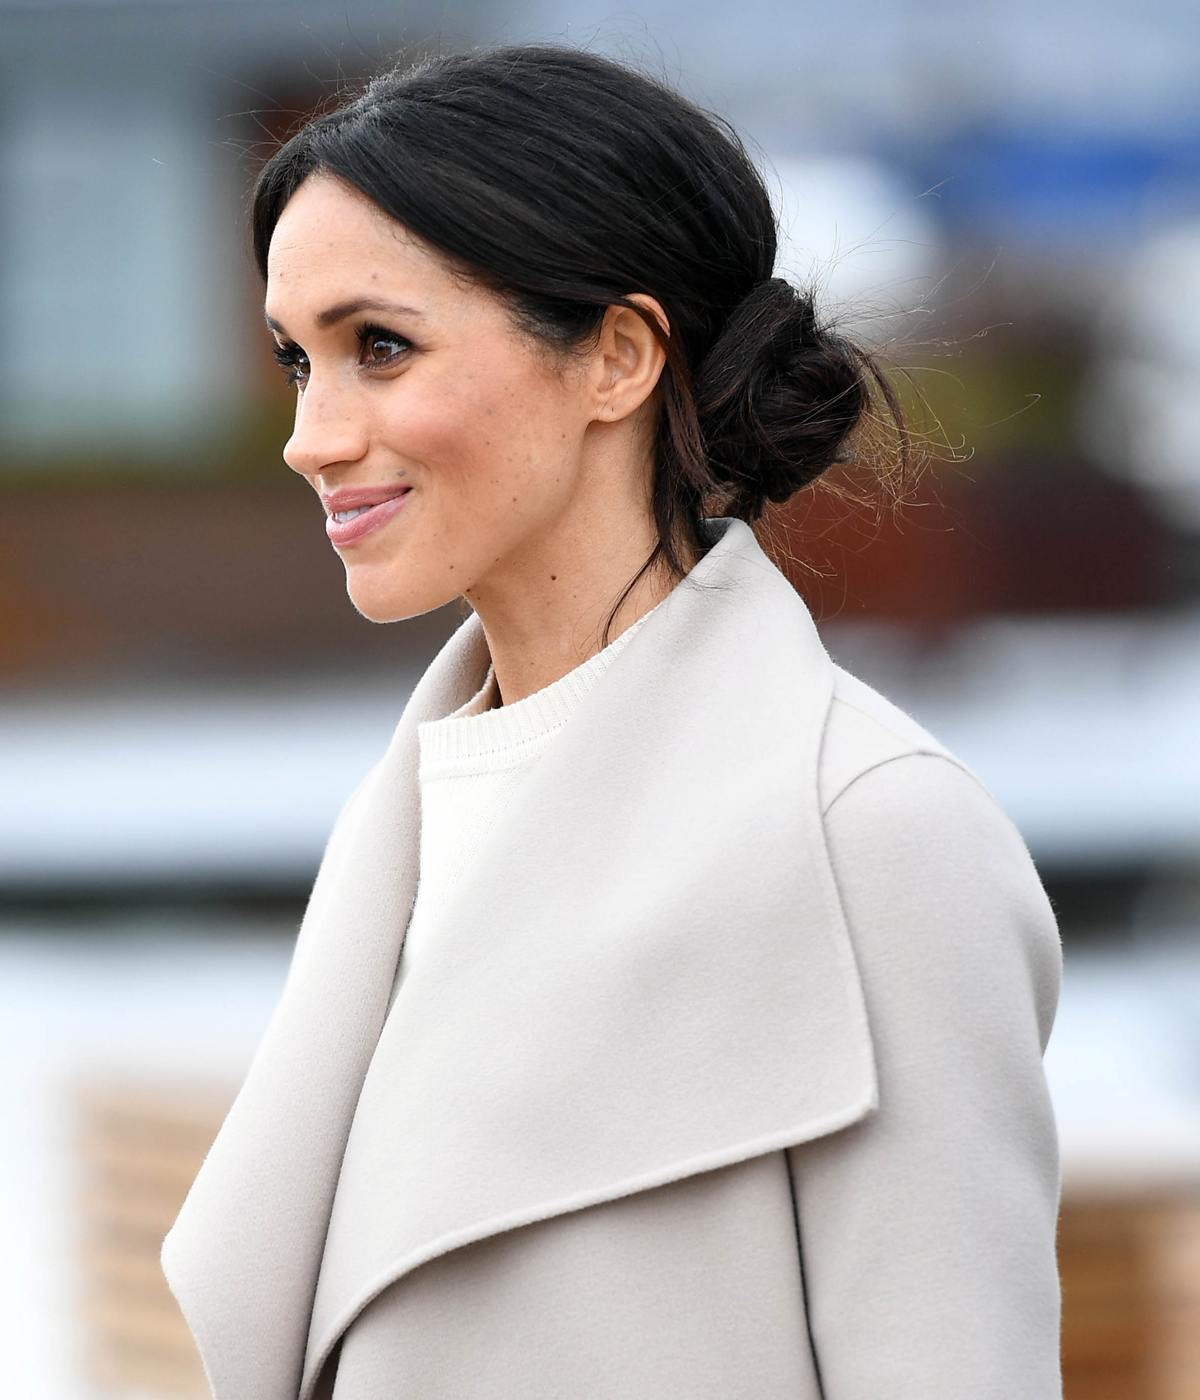 How to do a messy bun like meghan markle for How to get makeup out of white shirt